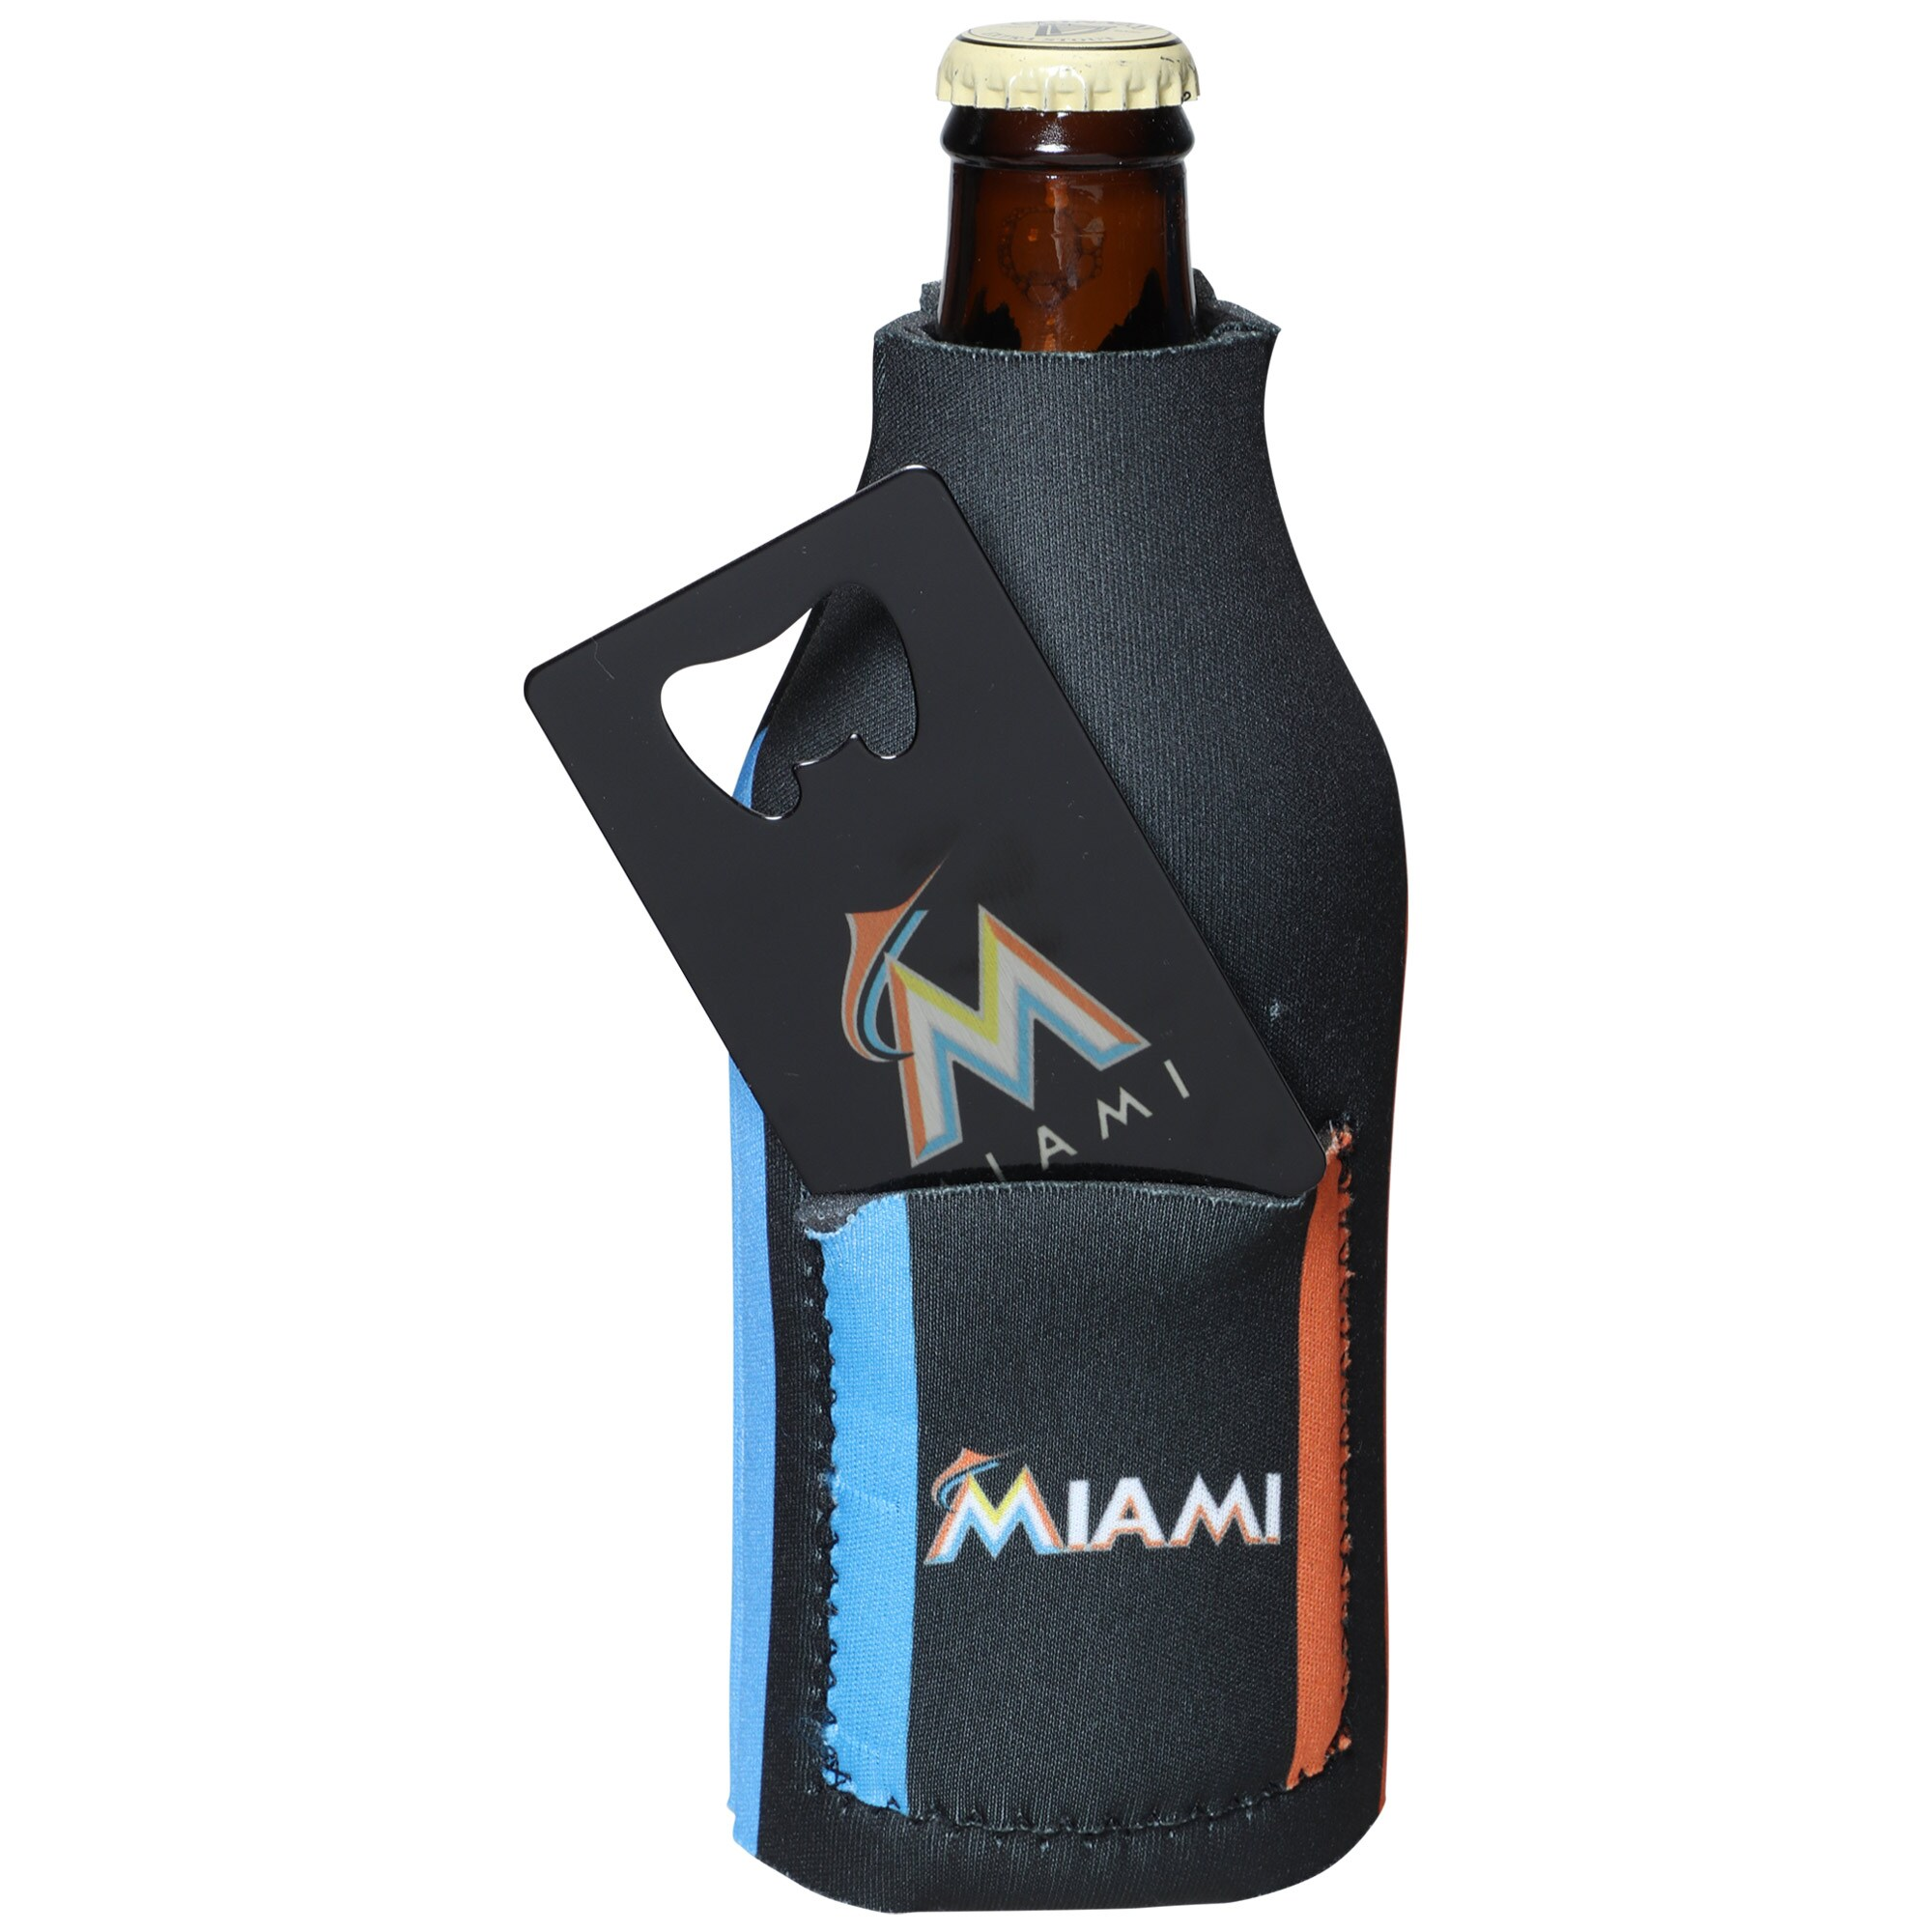 Miami Marlins Bottle Insulator with Pocket & Opener